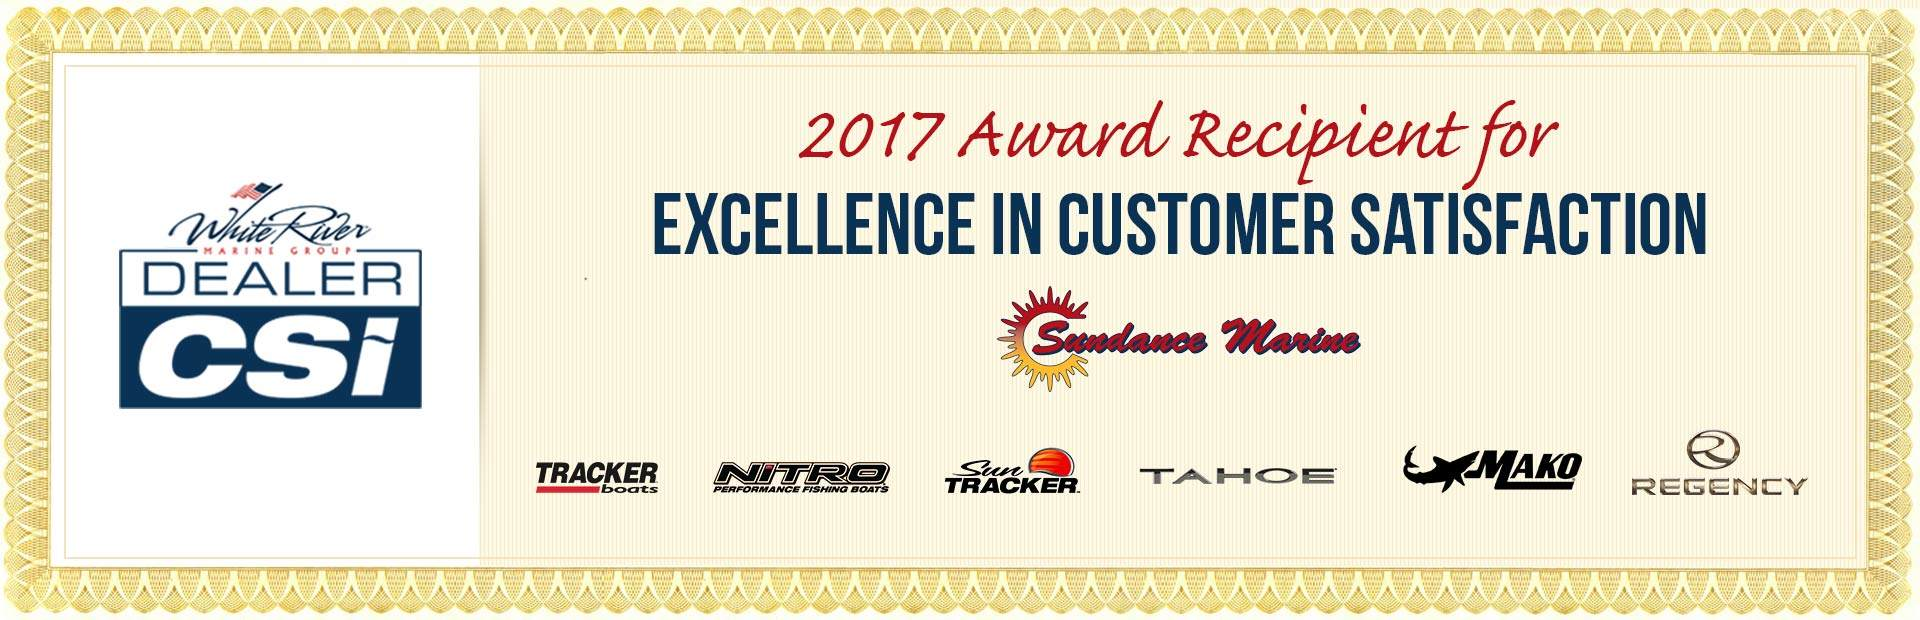 Sundance Marine was a recipient of the 2017 White River Marine Group Dealer CSI Award for excellence in customer satisfaction!